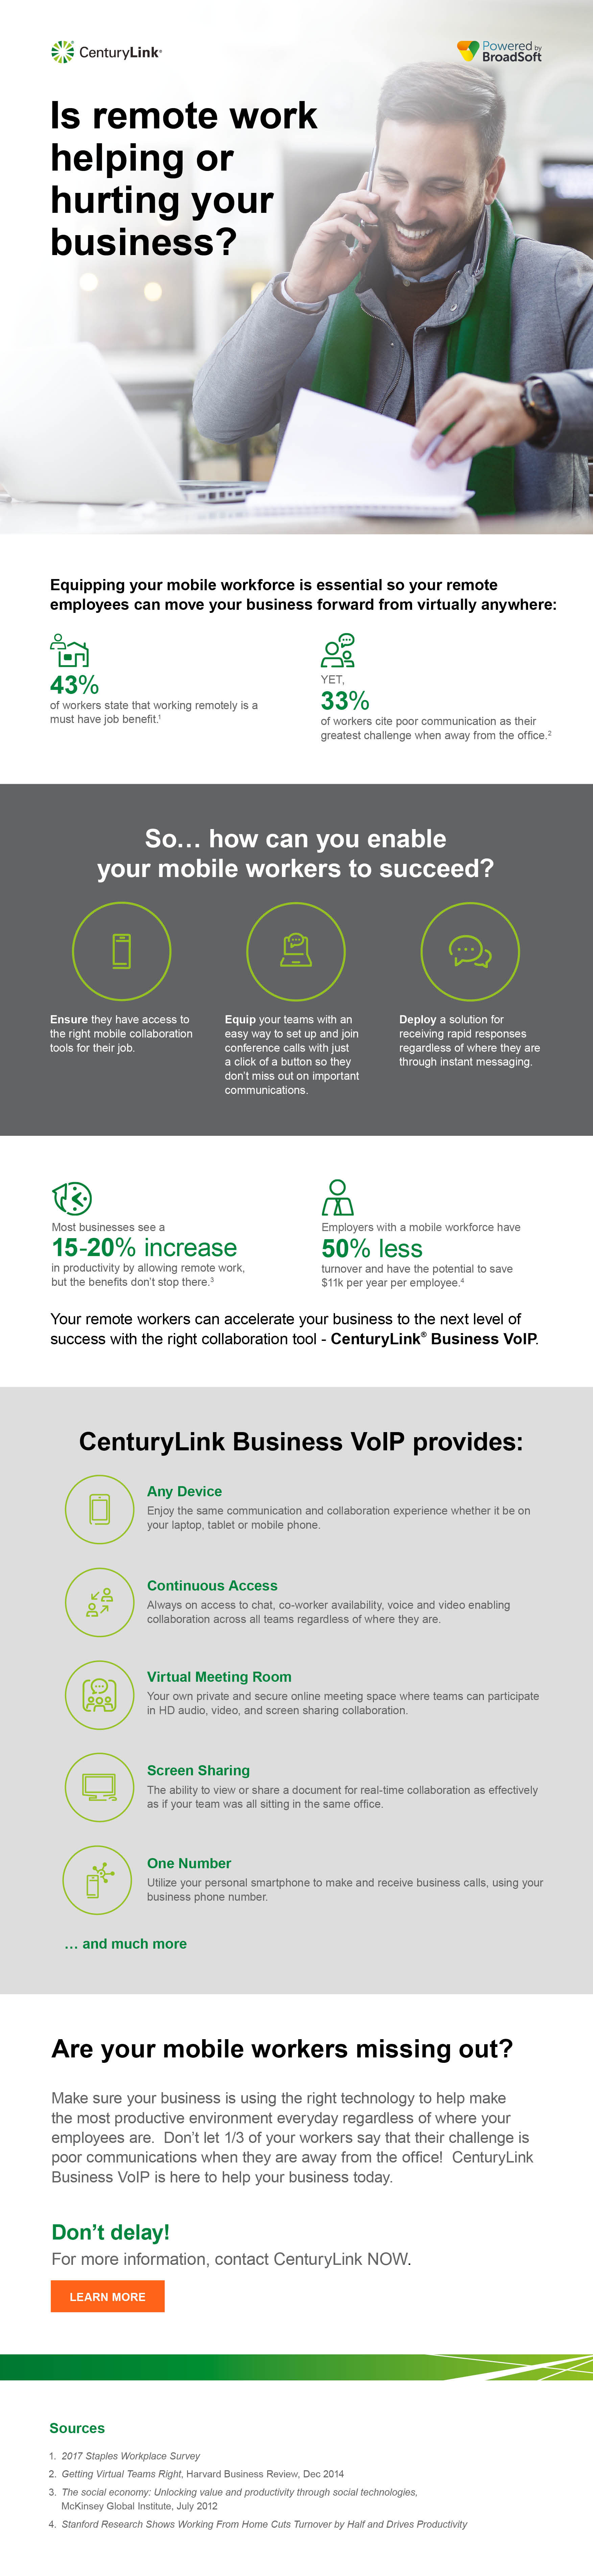 GEMS_Is Remote Work Helping or Hurting Your Business_Broadsoft_infographic_R3_8.2.18_FINAL.jpg